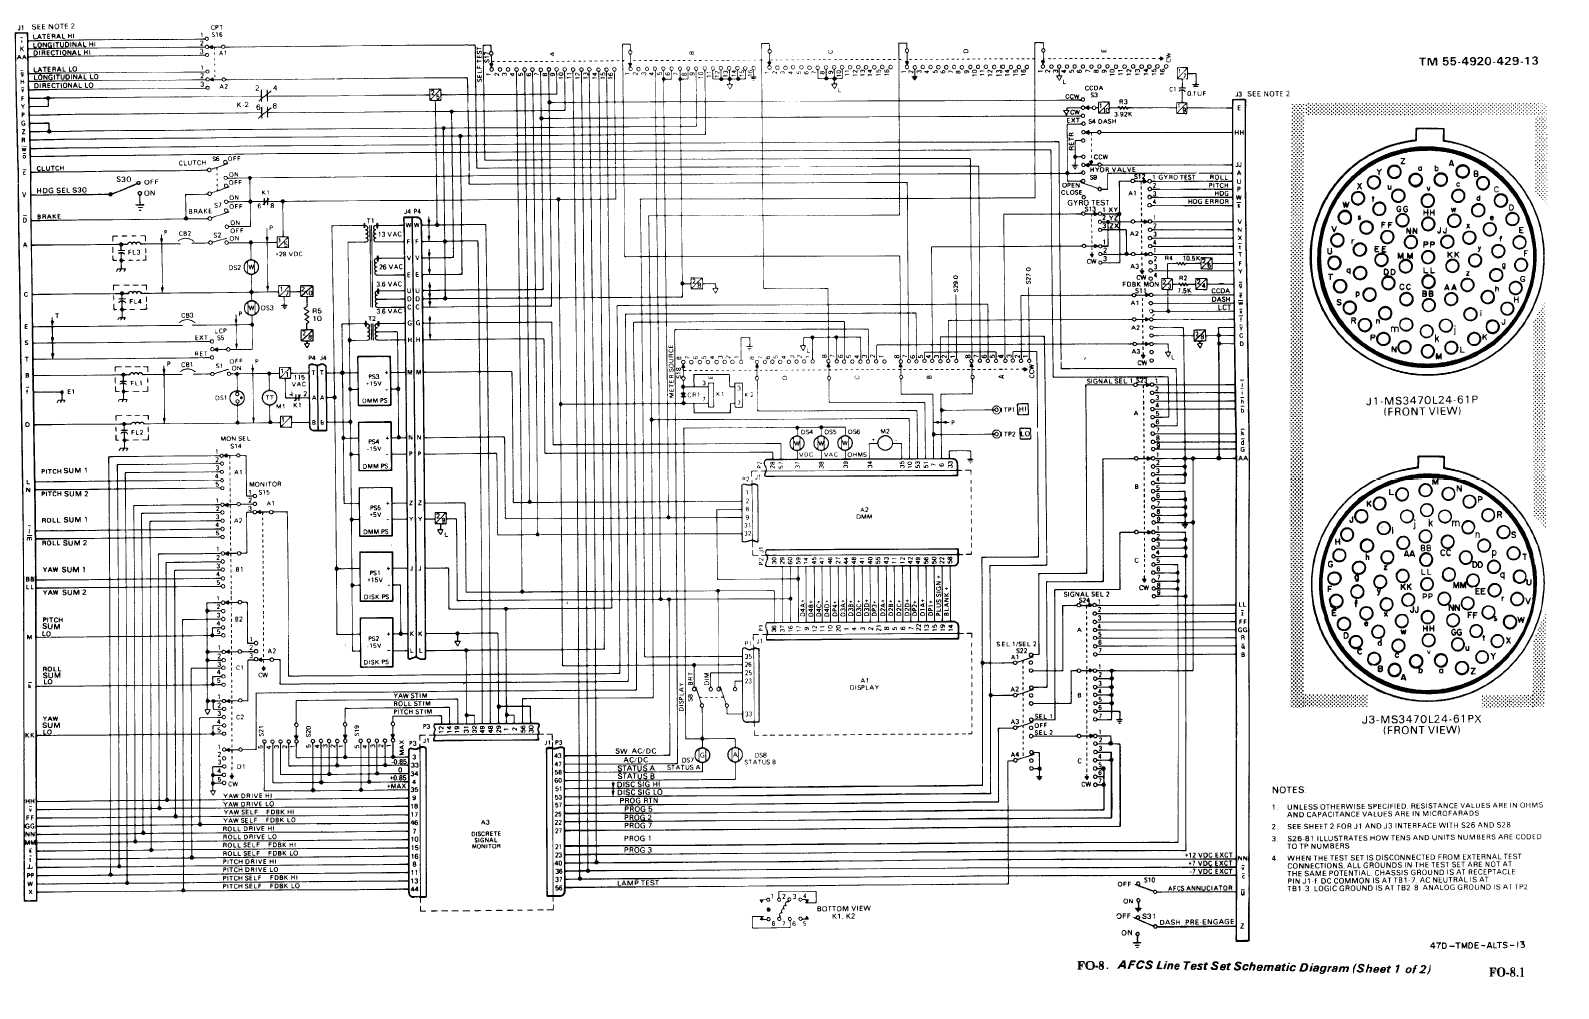 Analog Multimeter Circuit Diagram Voltmeter Pdf Digital Download